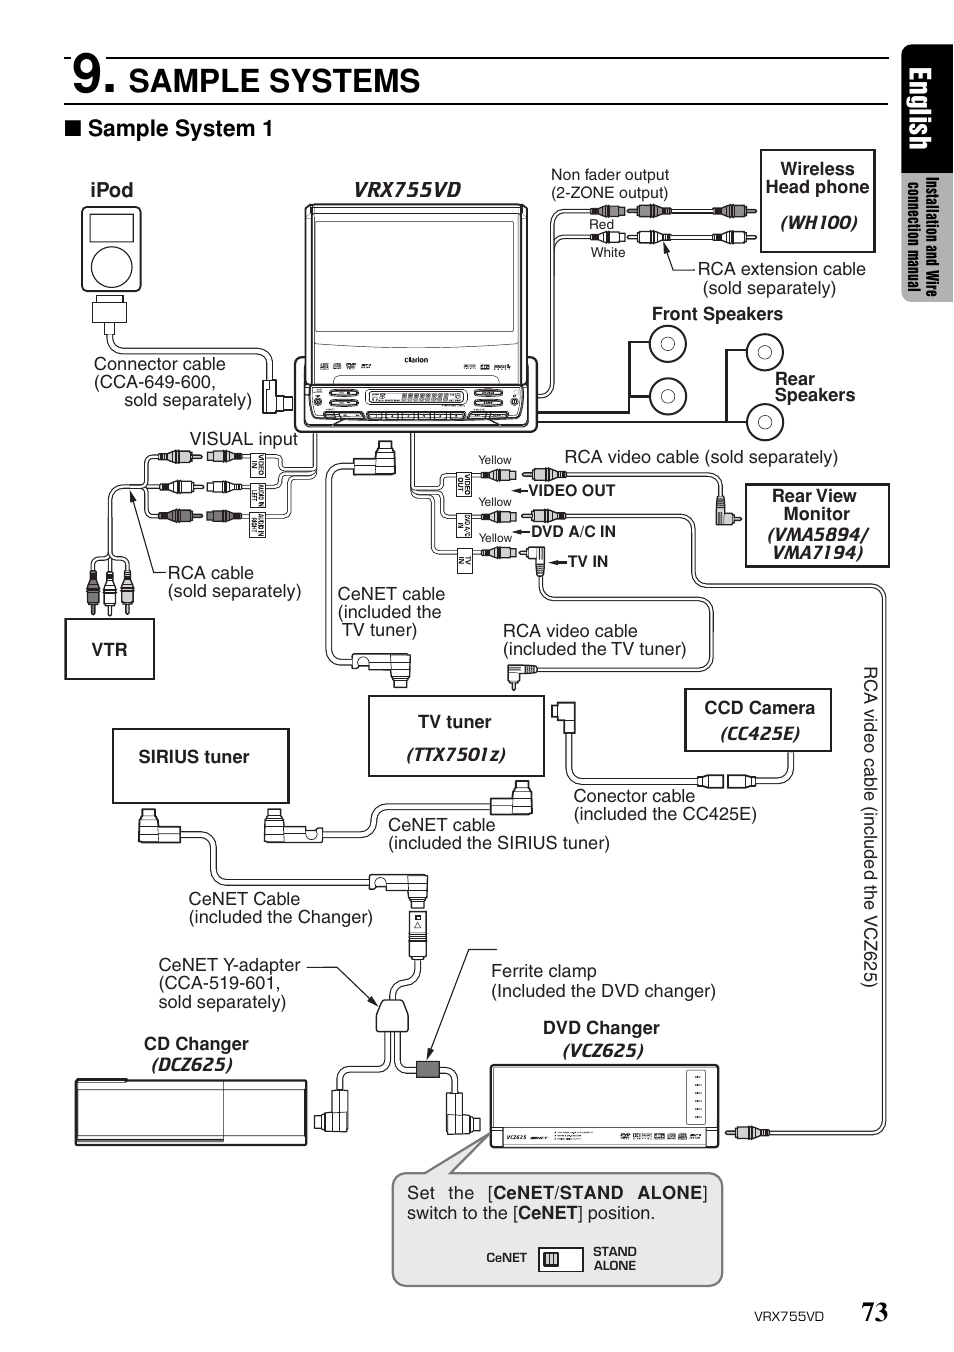 clarion rx755vd page71 clarion vrx755vd car dvd player wiring diagram wiring diagram clarion vrx745vd wiring diagram at virtualis.co